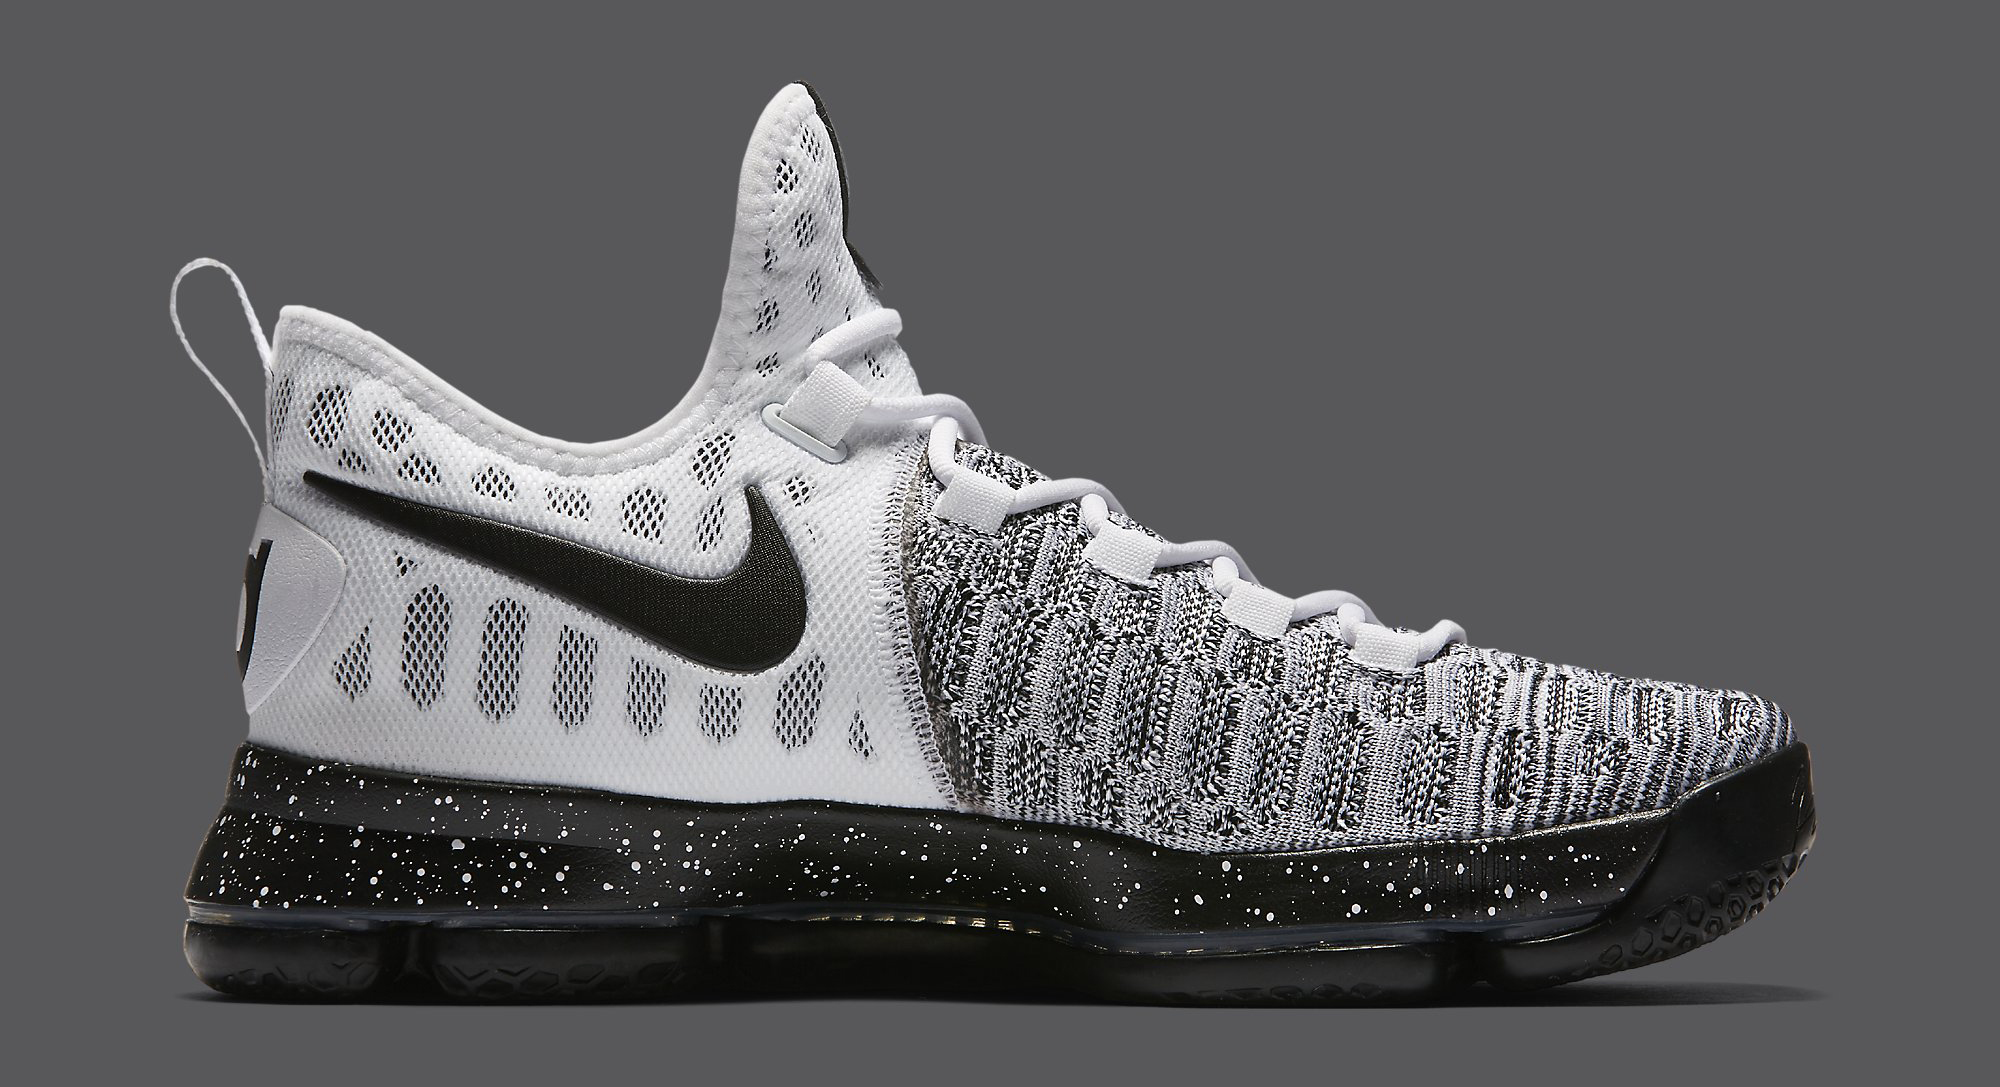 info for a63d9 5eb4f Image via Nike Nike KD 9 White Black Oreo 843392-100 Medial